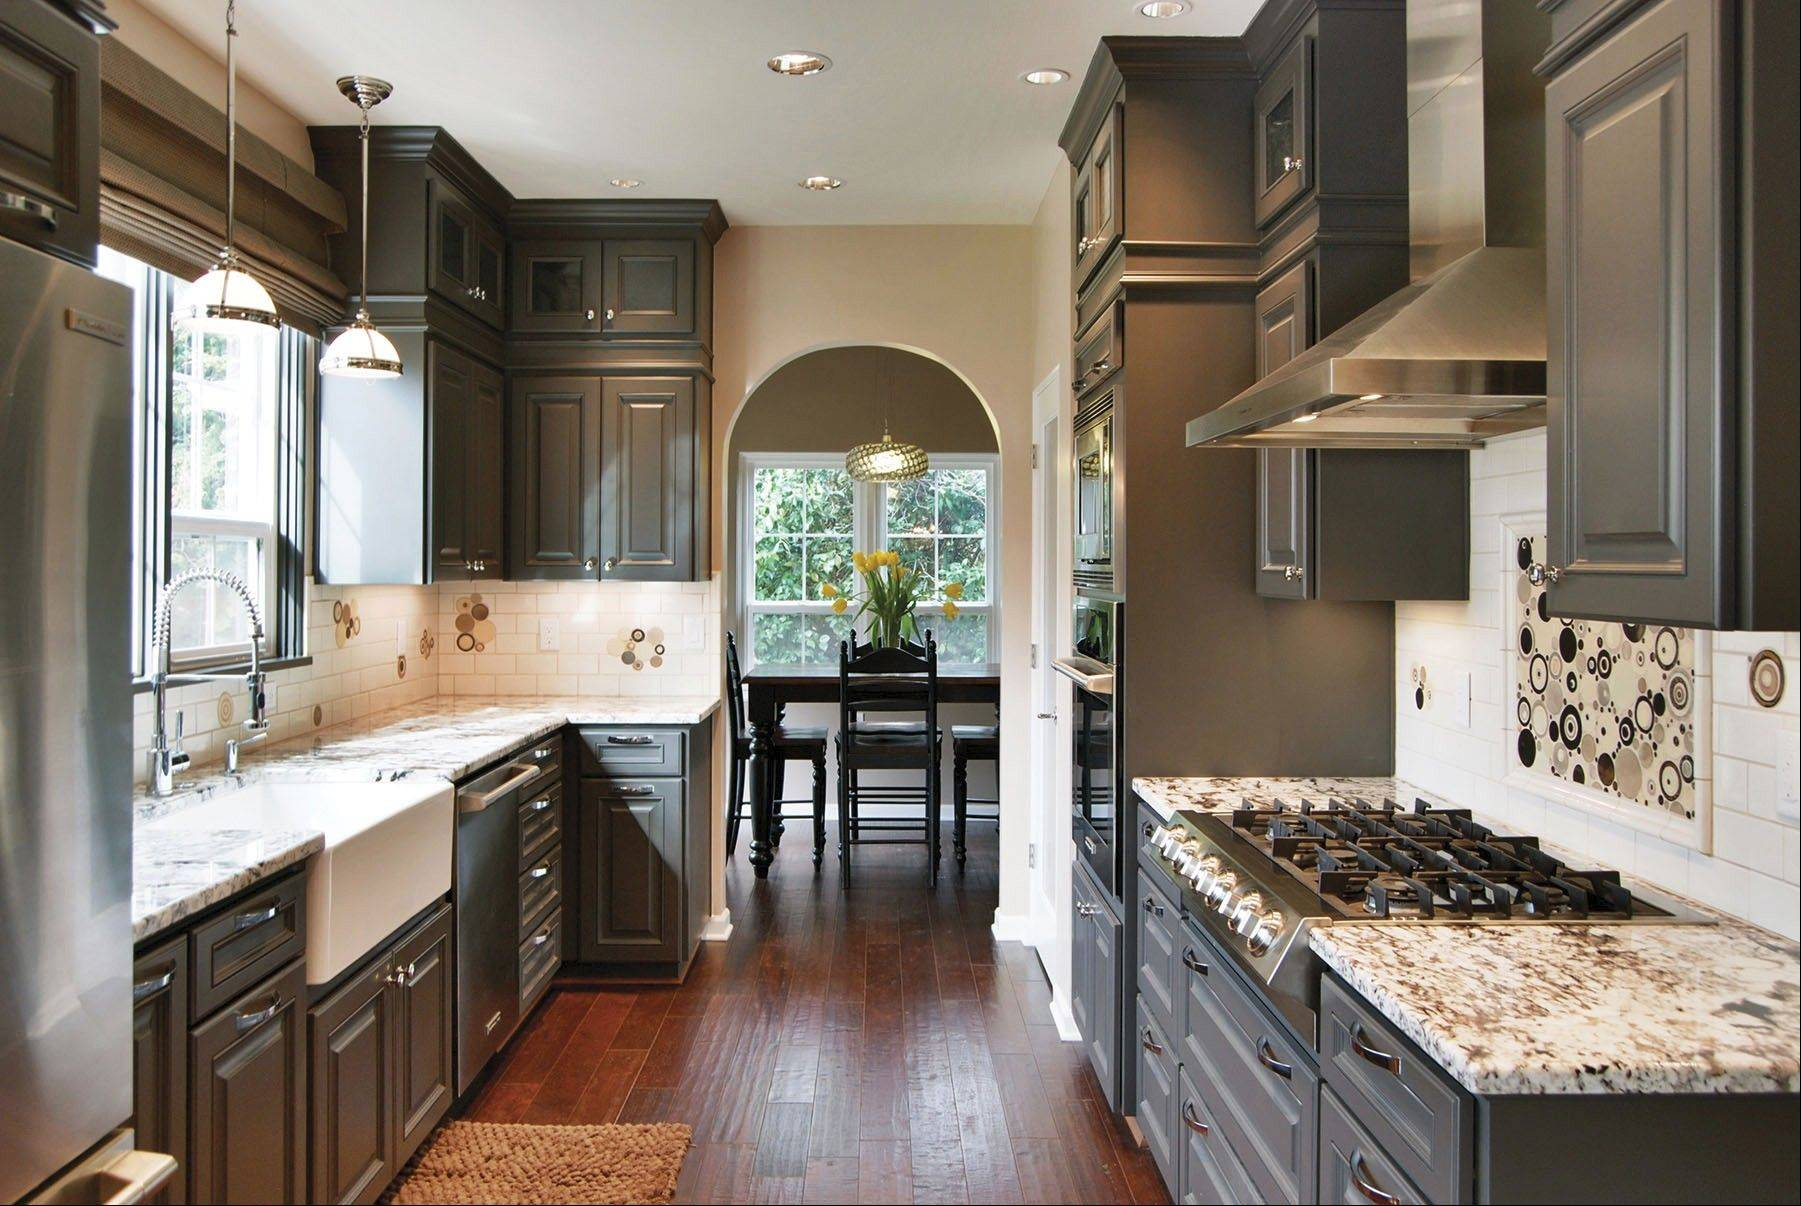 Dark, warm gray cabinets have a sleek finish and ground this traditional kitchen design. A black and white backsplash gives it extra pop.